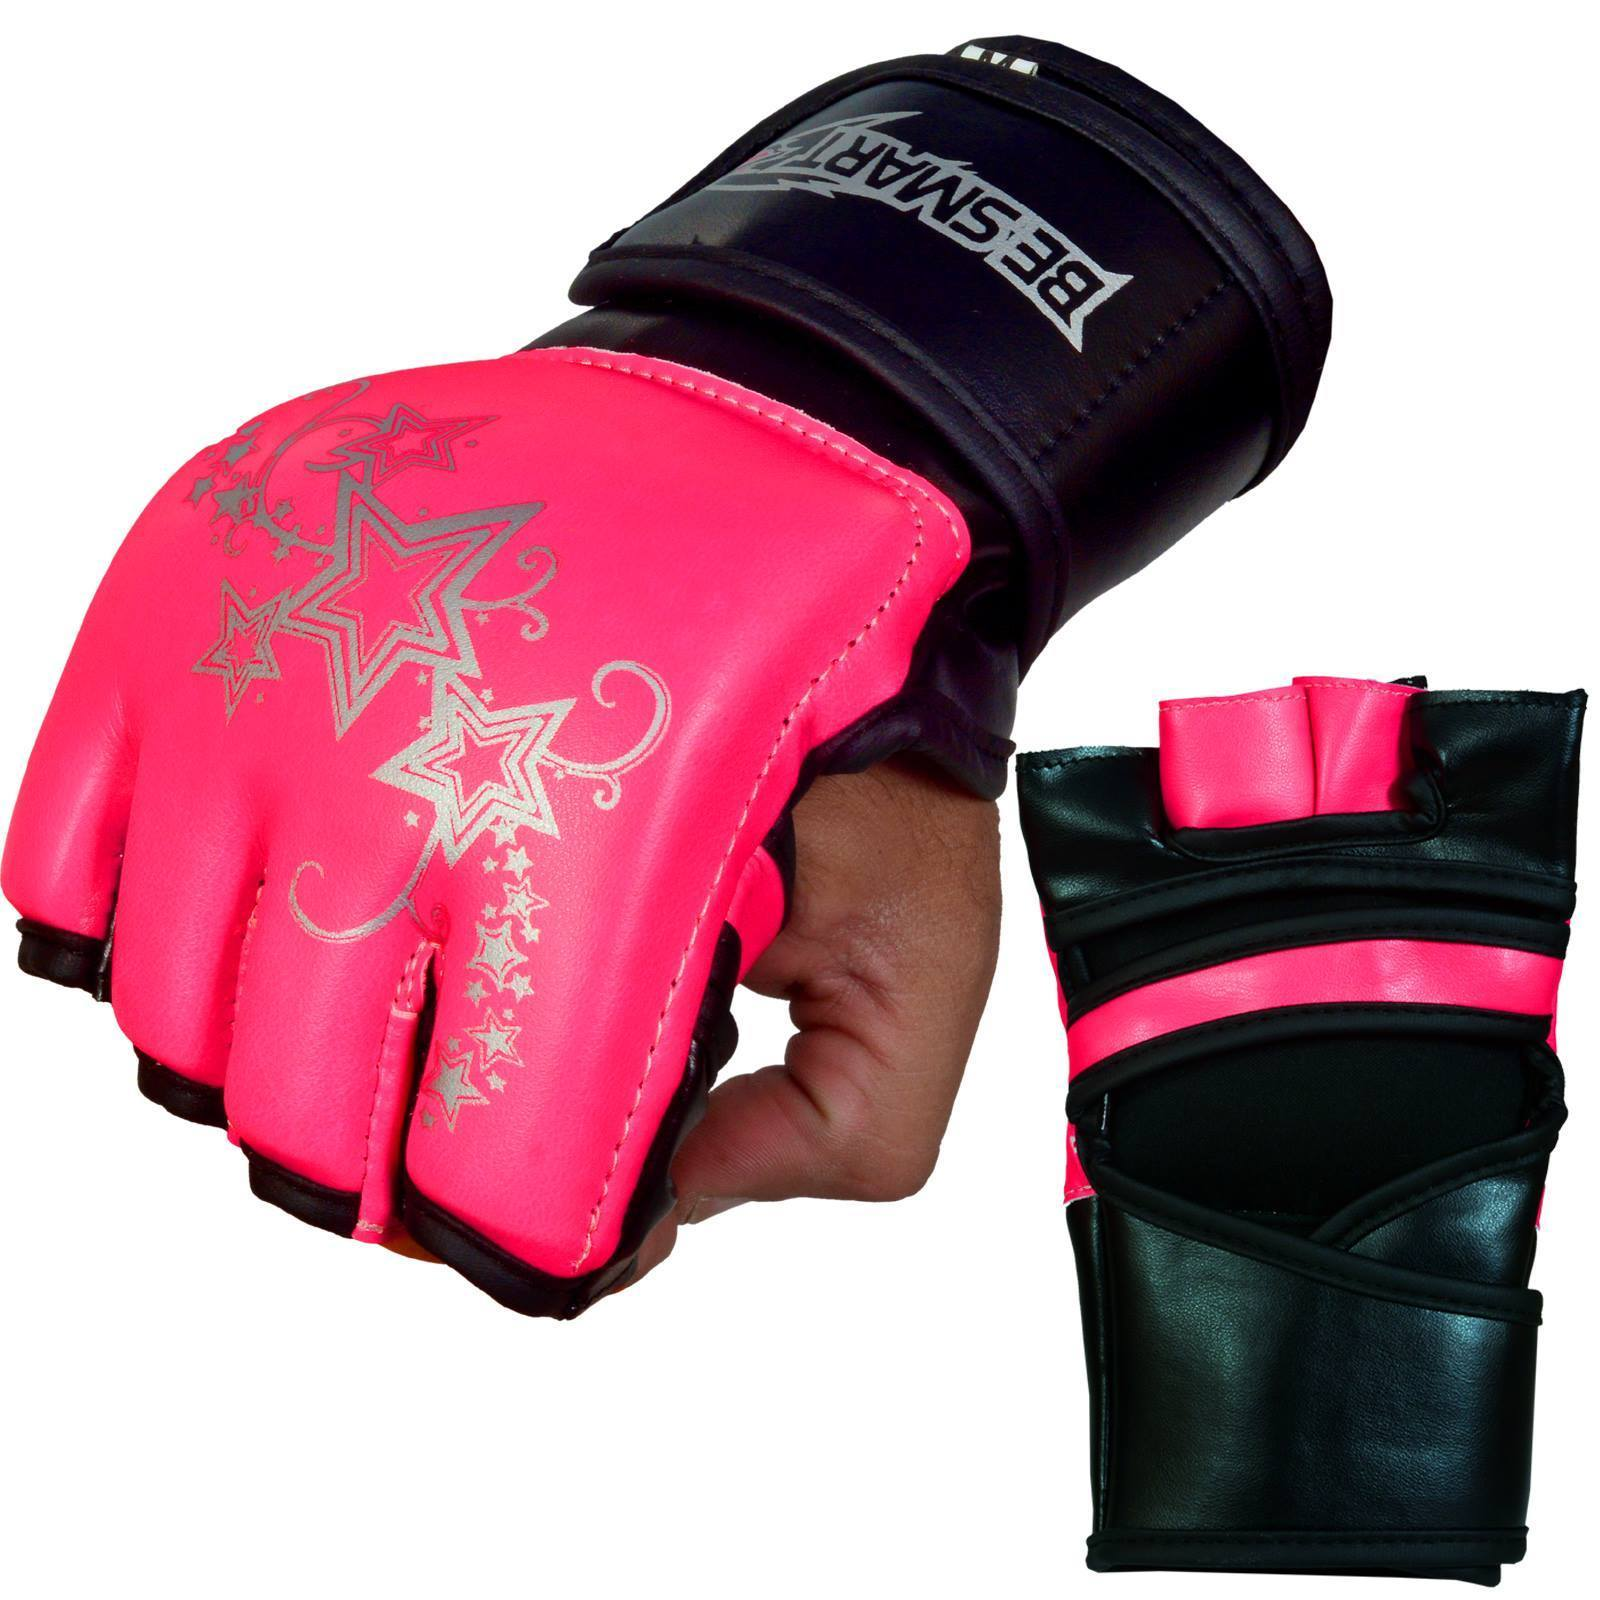 Evo Ladies Pink Elasticated Gel Gloves Boxing Wrist Wraps Support Straps MMA Bag